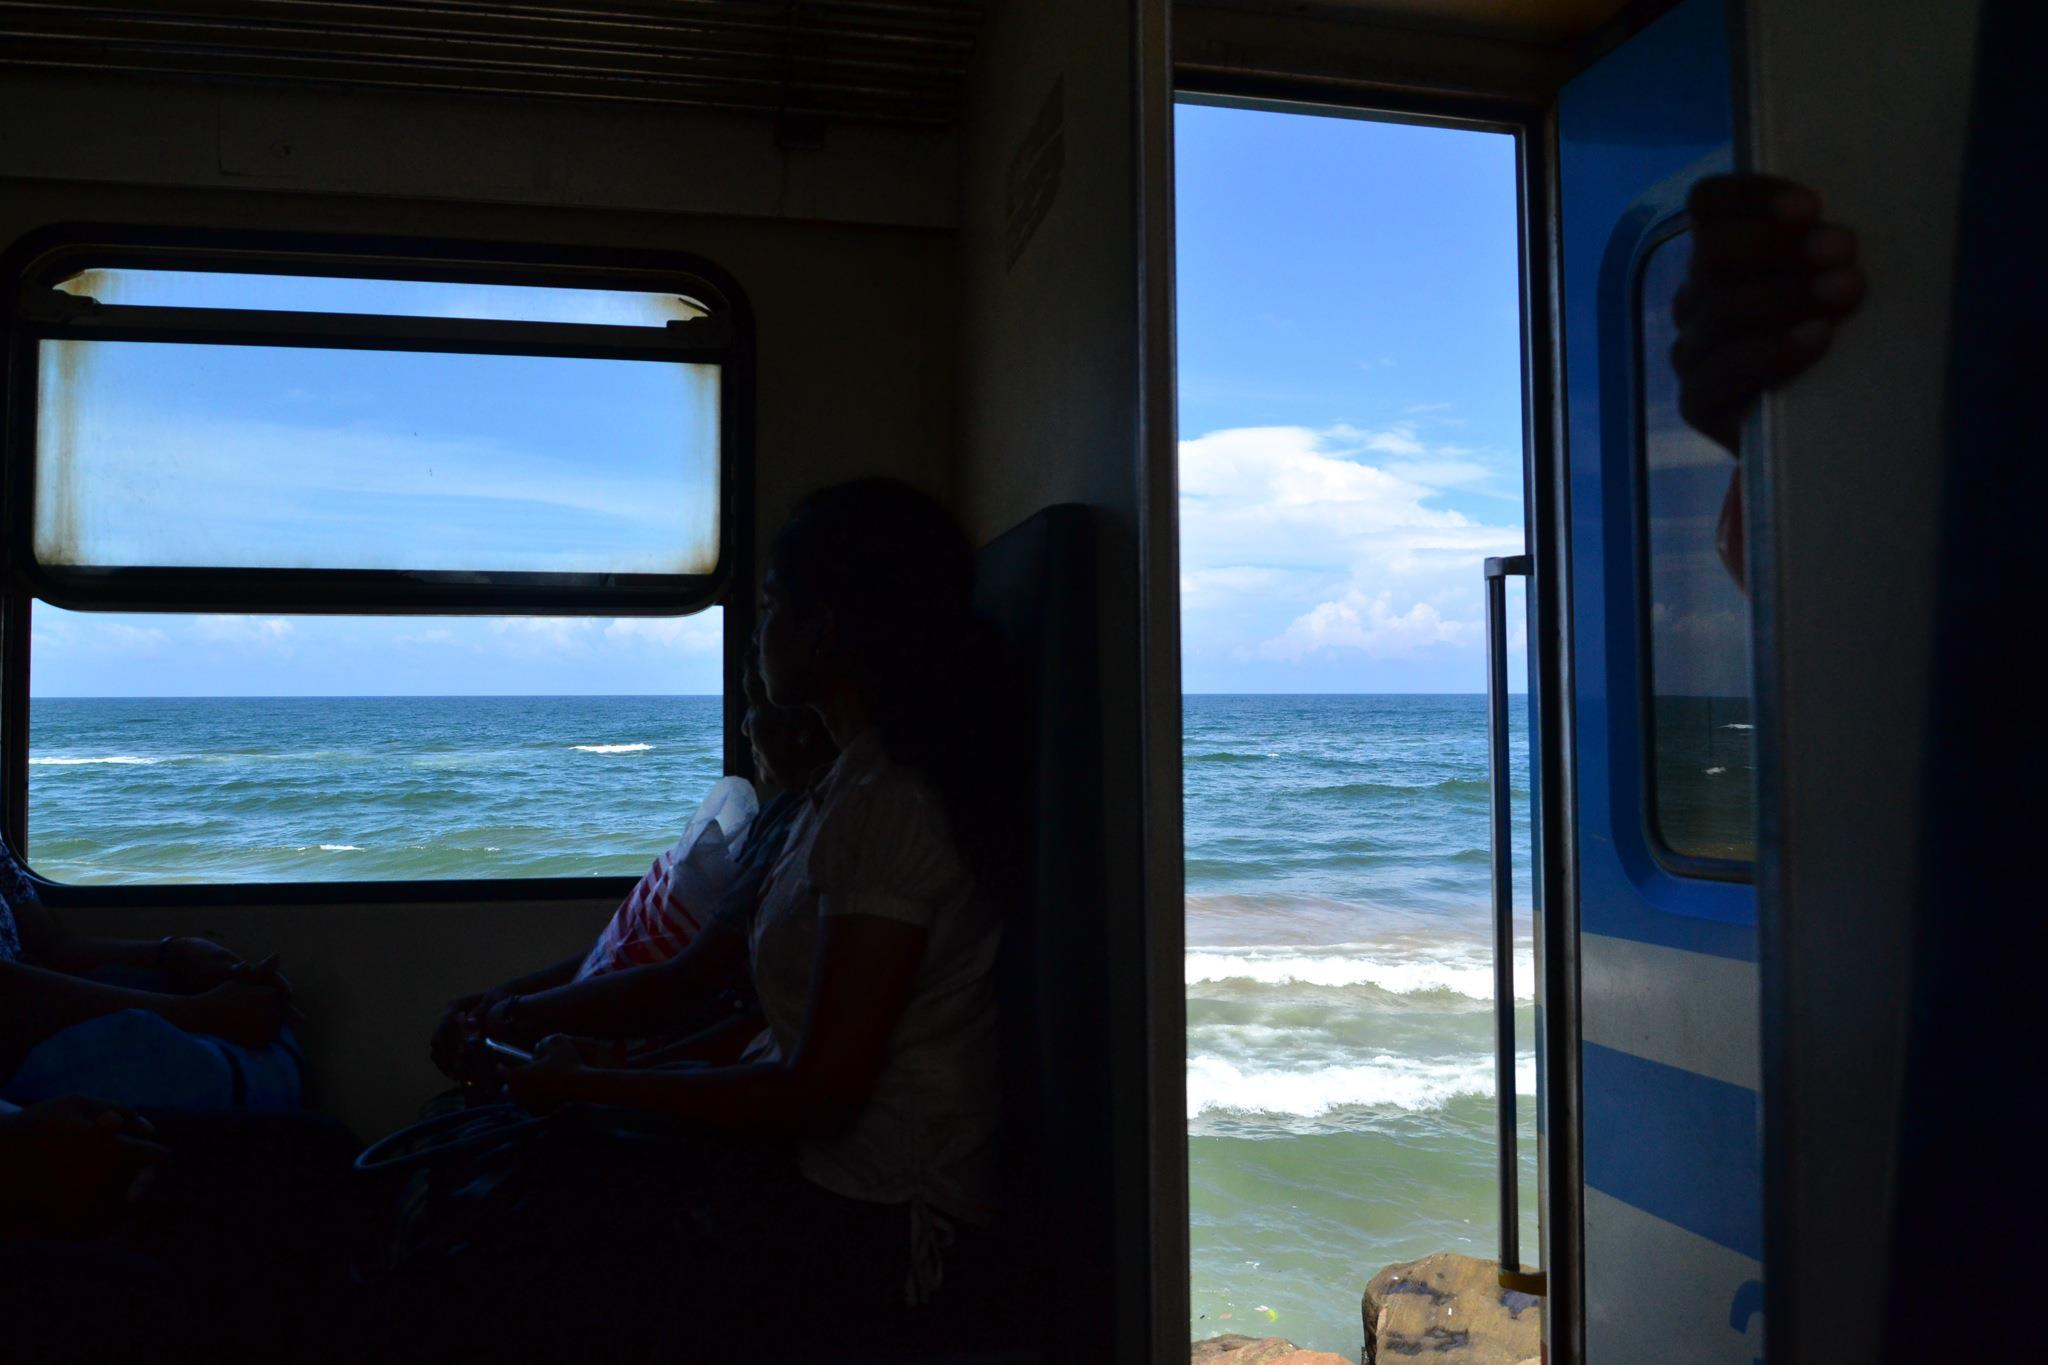 Rail travel on the Colombo-Galle Line in Sri Lanka